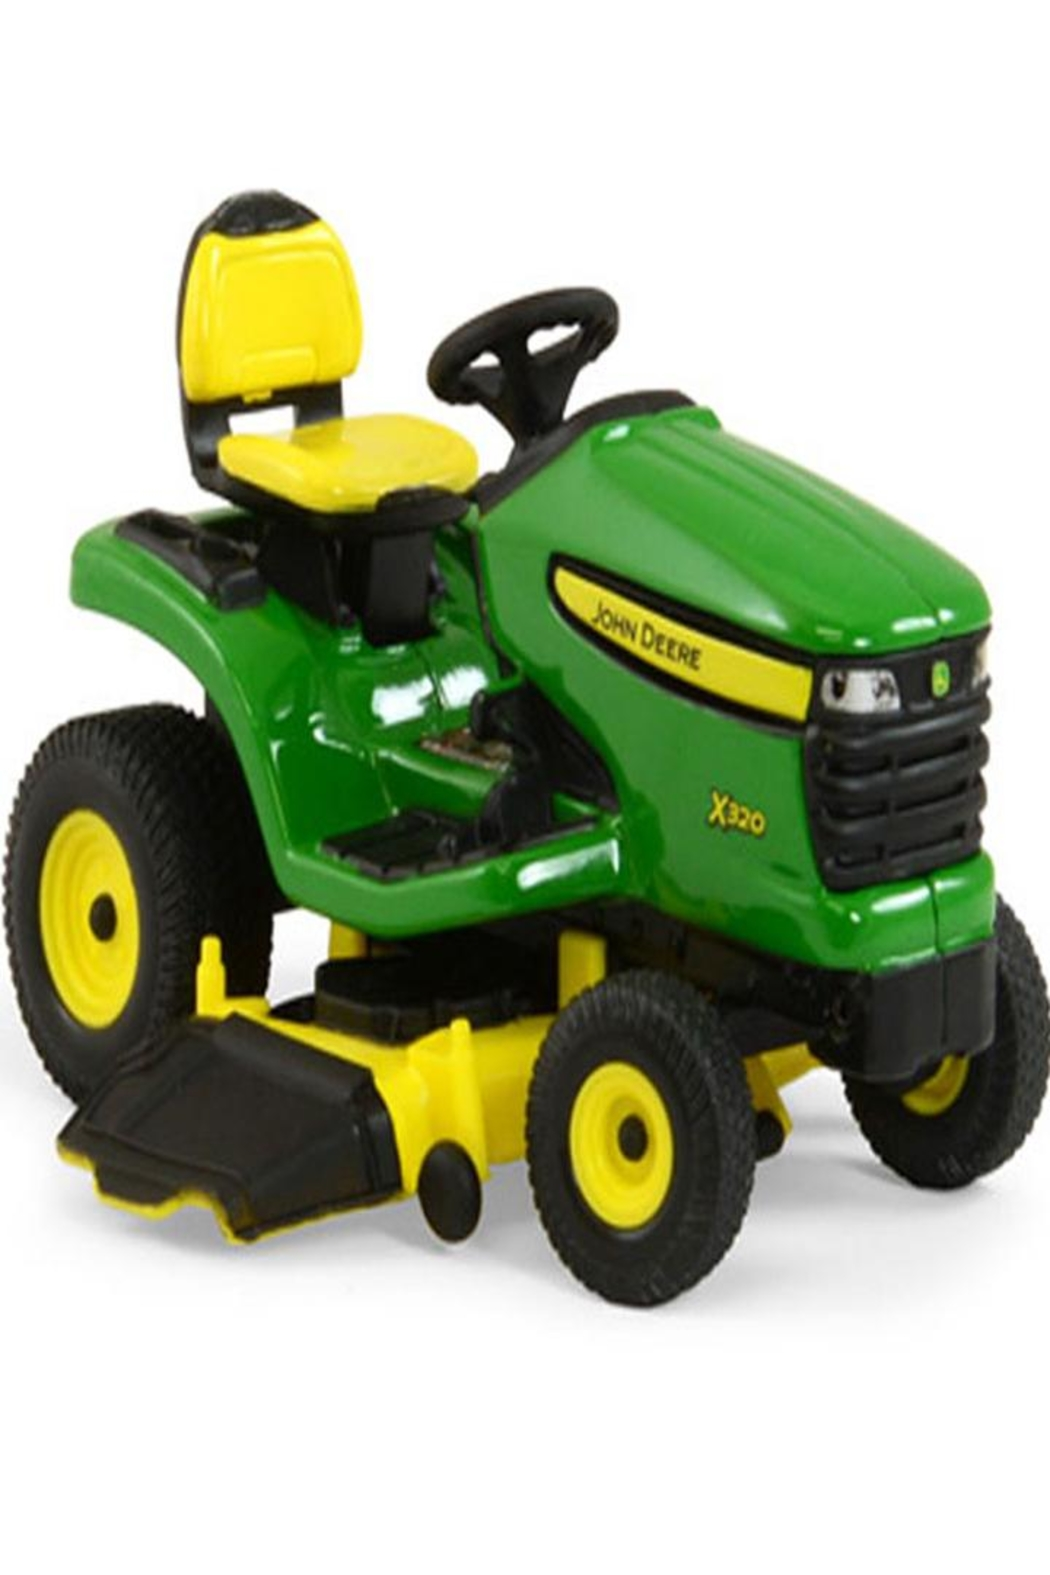 ERTL X320 Lawn Tractor Toy - Main Image